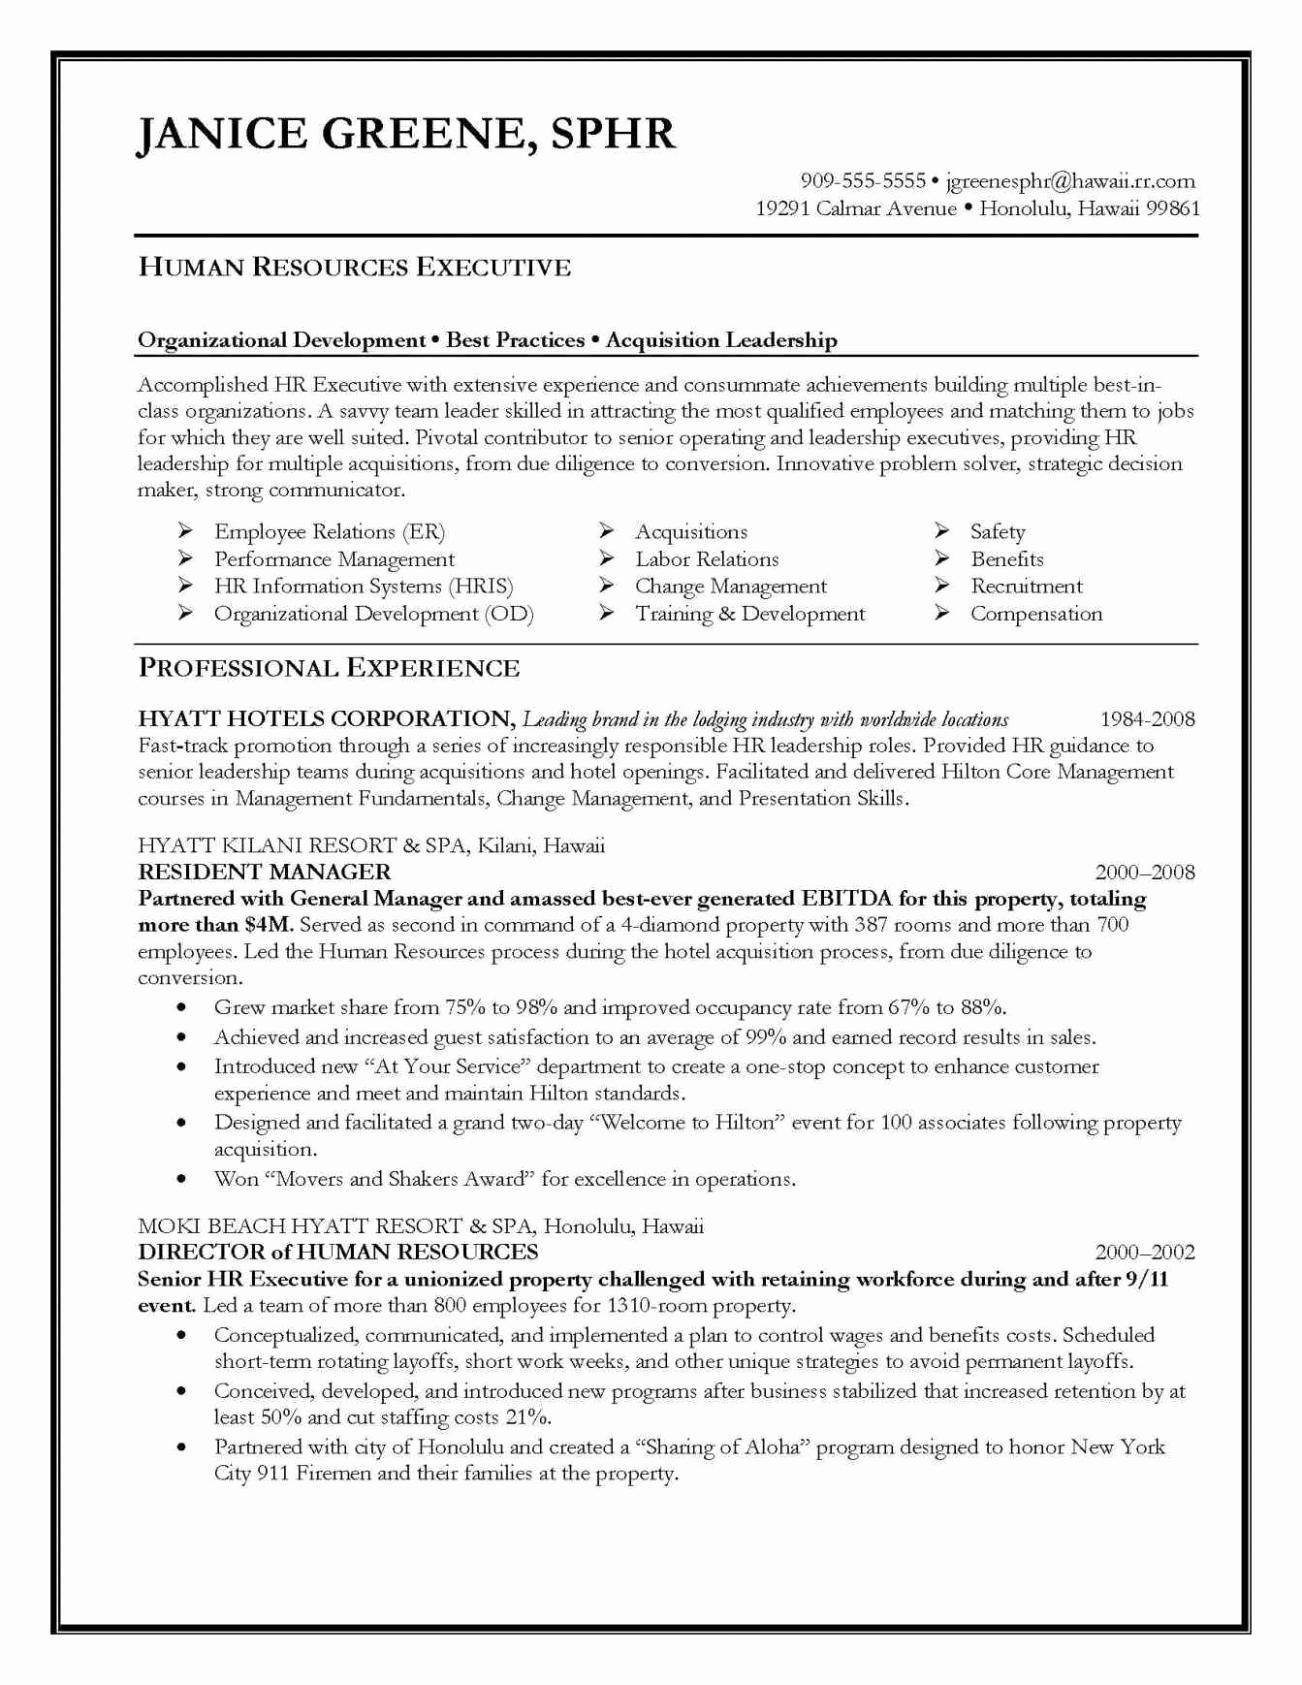 Pre Opening Hotel Experience Resume - Resume Examples